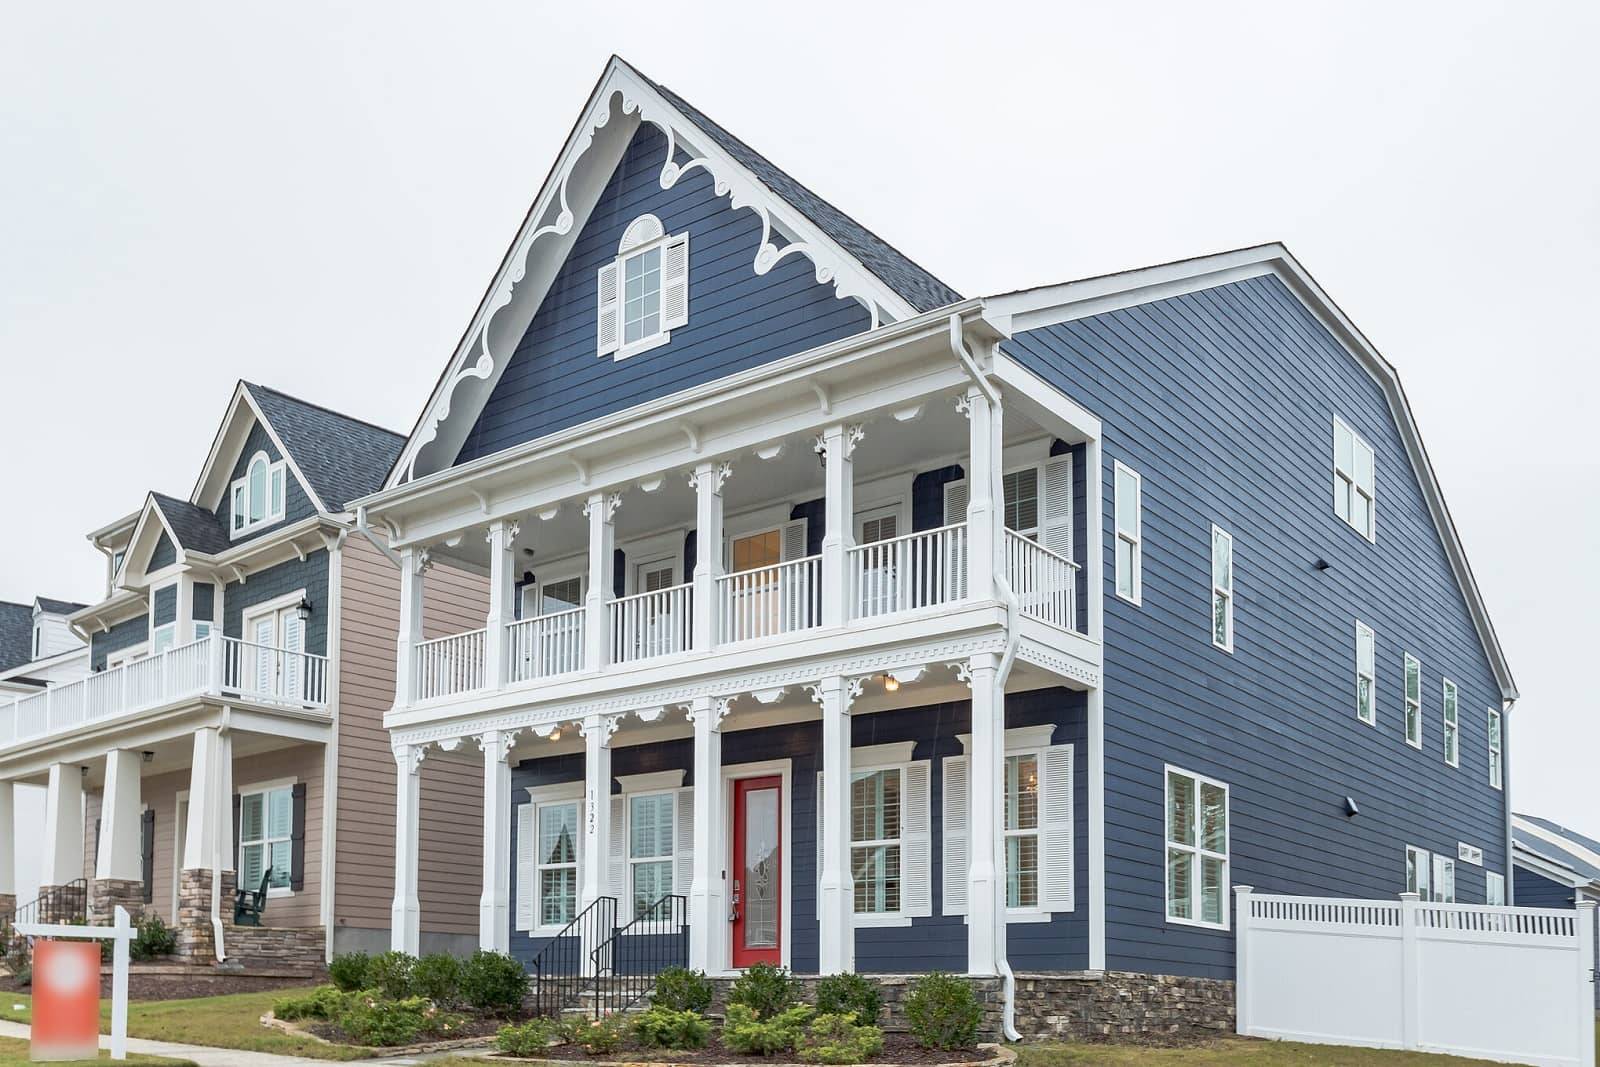 Real Estate Photography in Apex - NC - USA - Front View